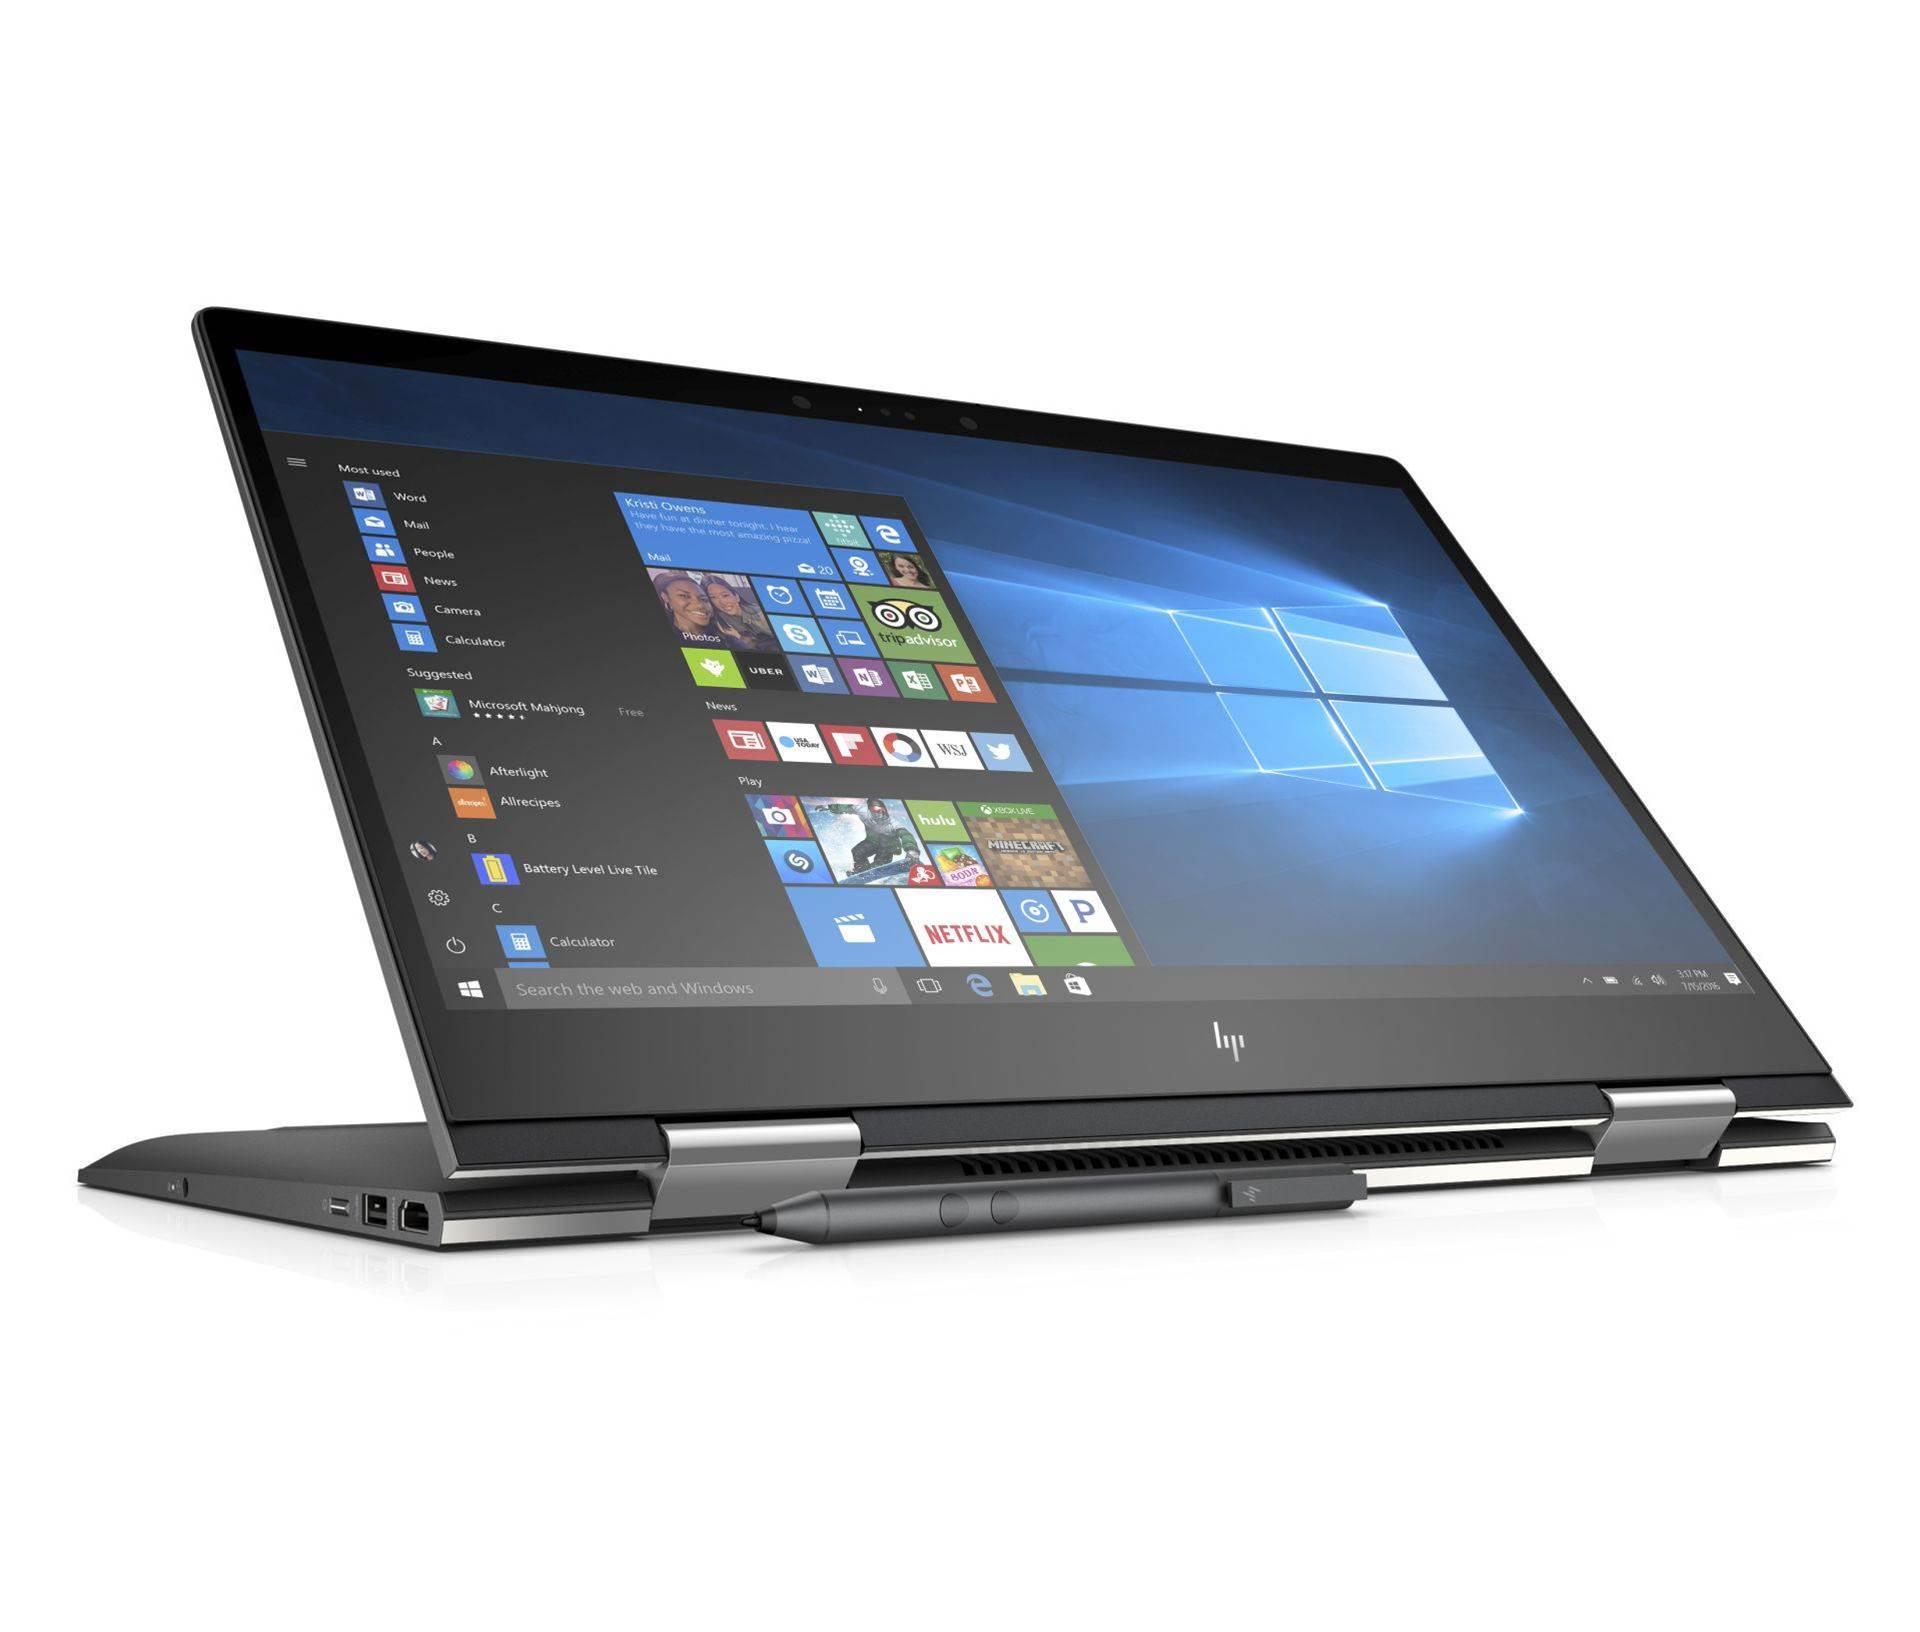 Review: HP Envy X360 15-BQ100AU 15.6in 2-in-1 Laptop